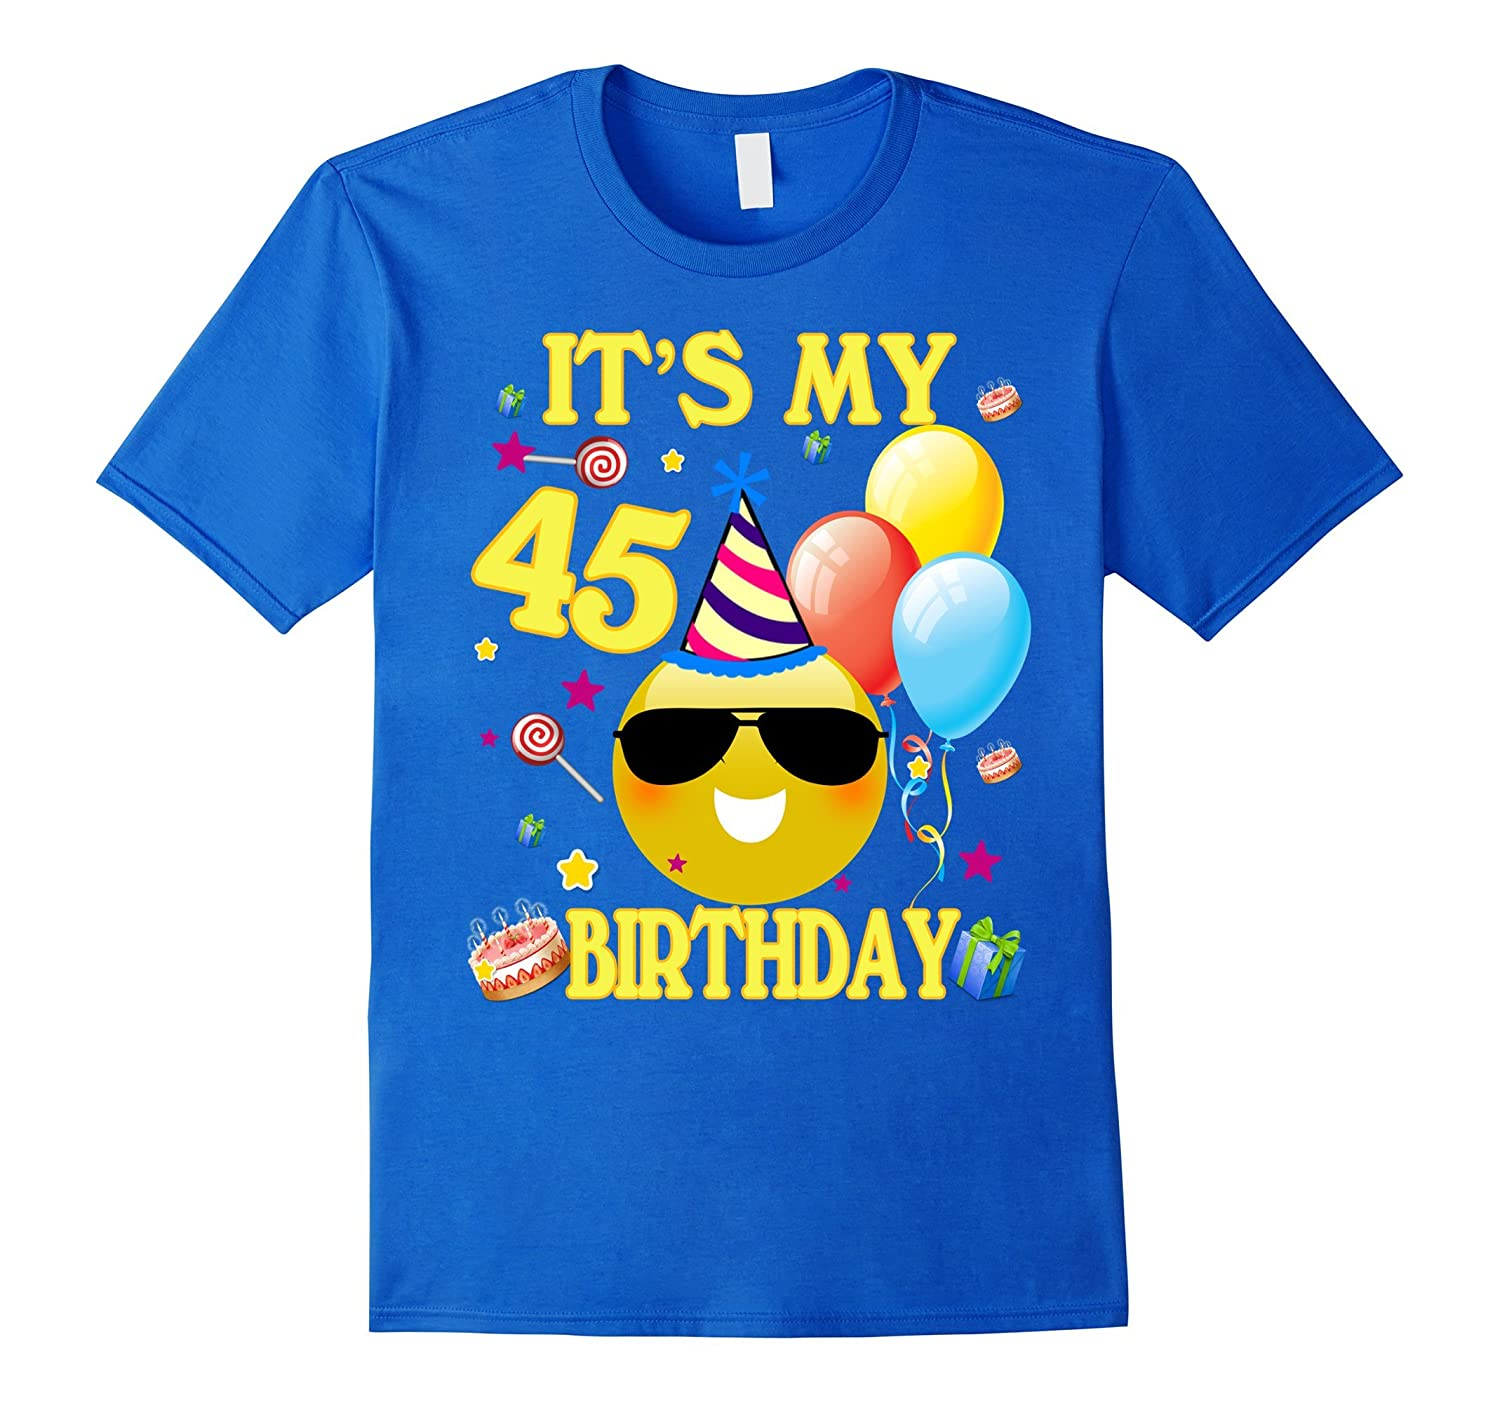 Its My 45th Birthday Shirt 45 Years Old Gift ANZ